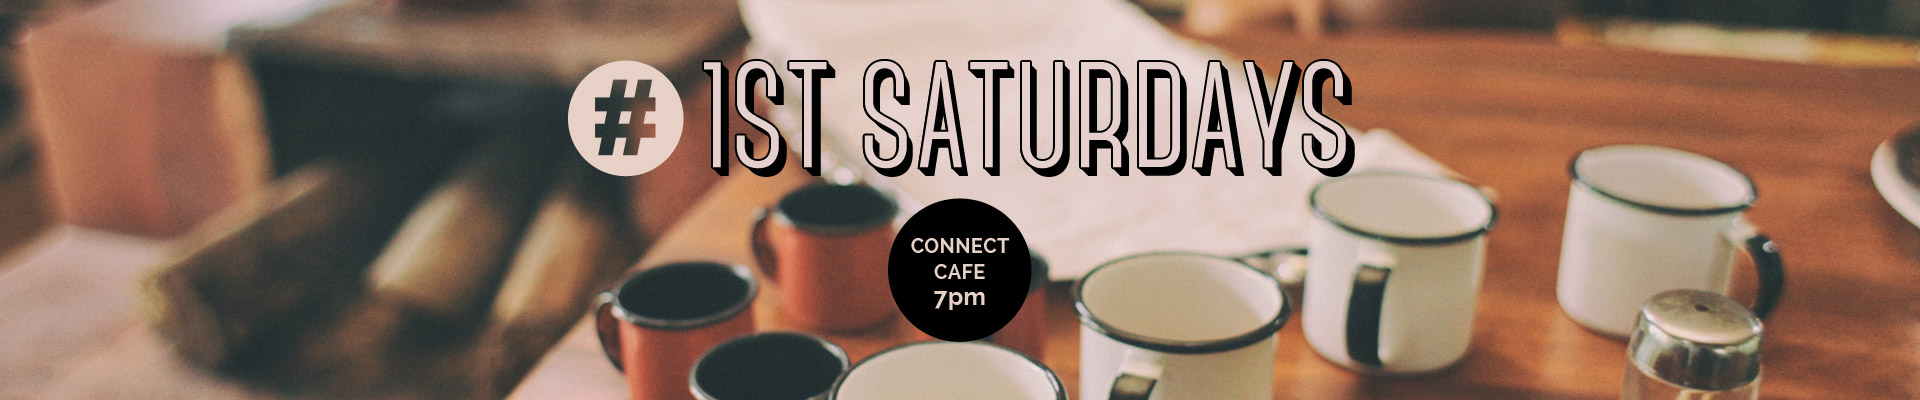 1ST SATURDAYS